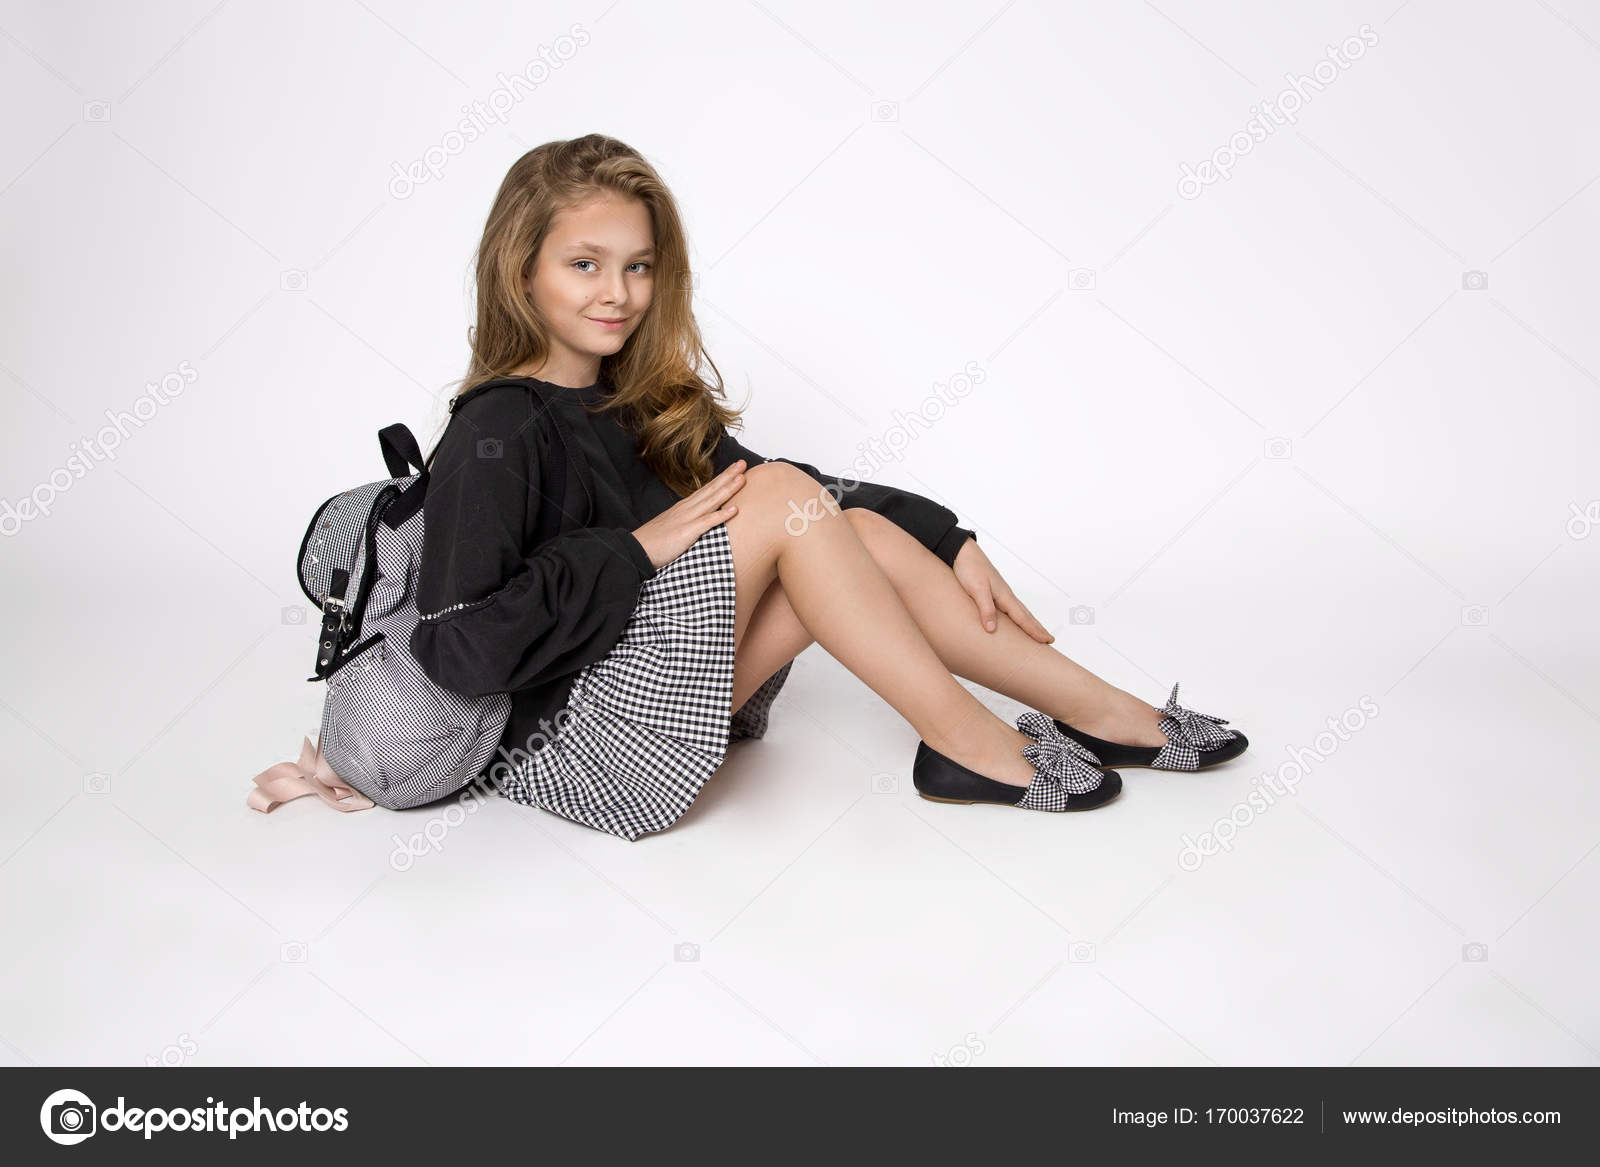 ec85a21b3907 Cute little girl dressed in school clothes and school backpack sitting on  white background– stock image